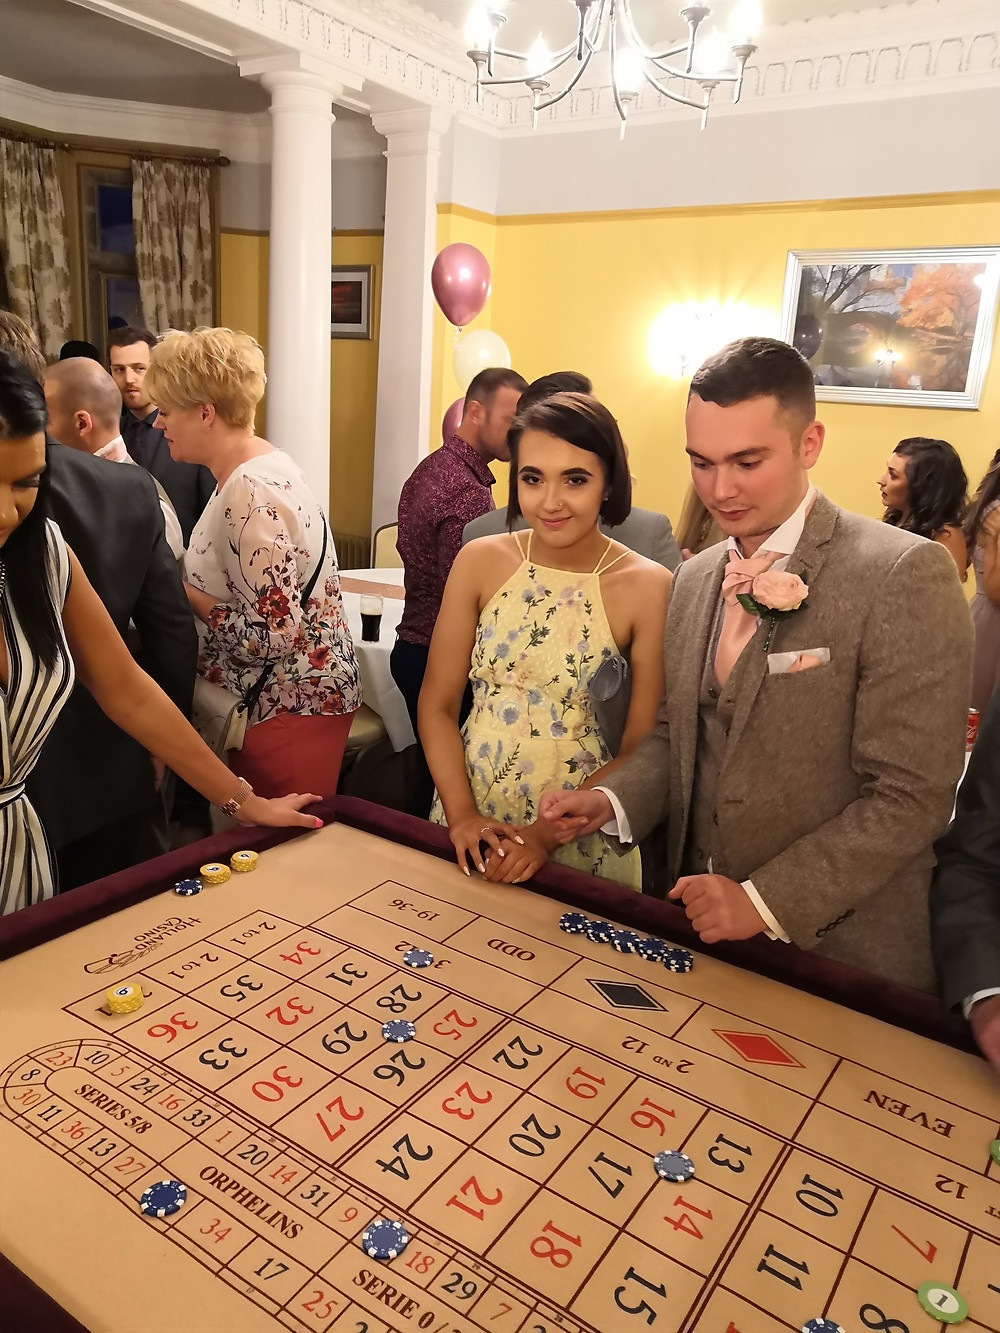 Wedding guests playing roulette